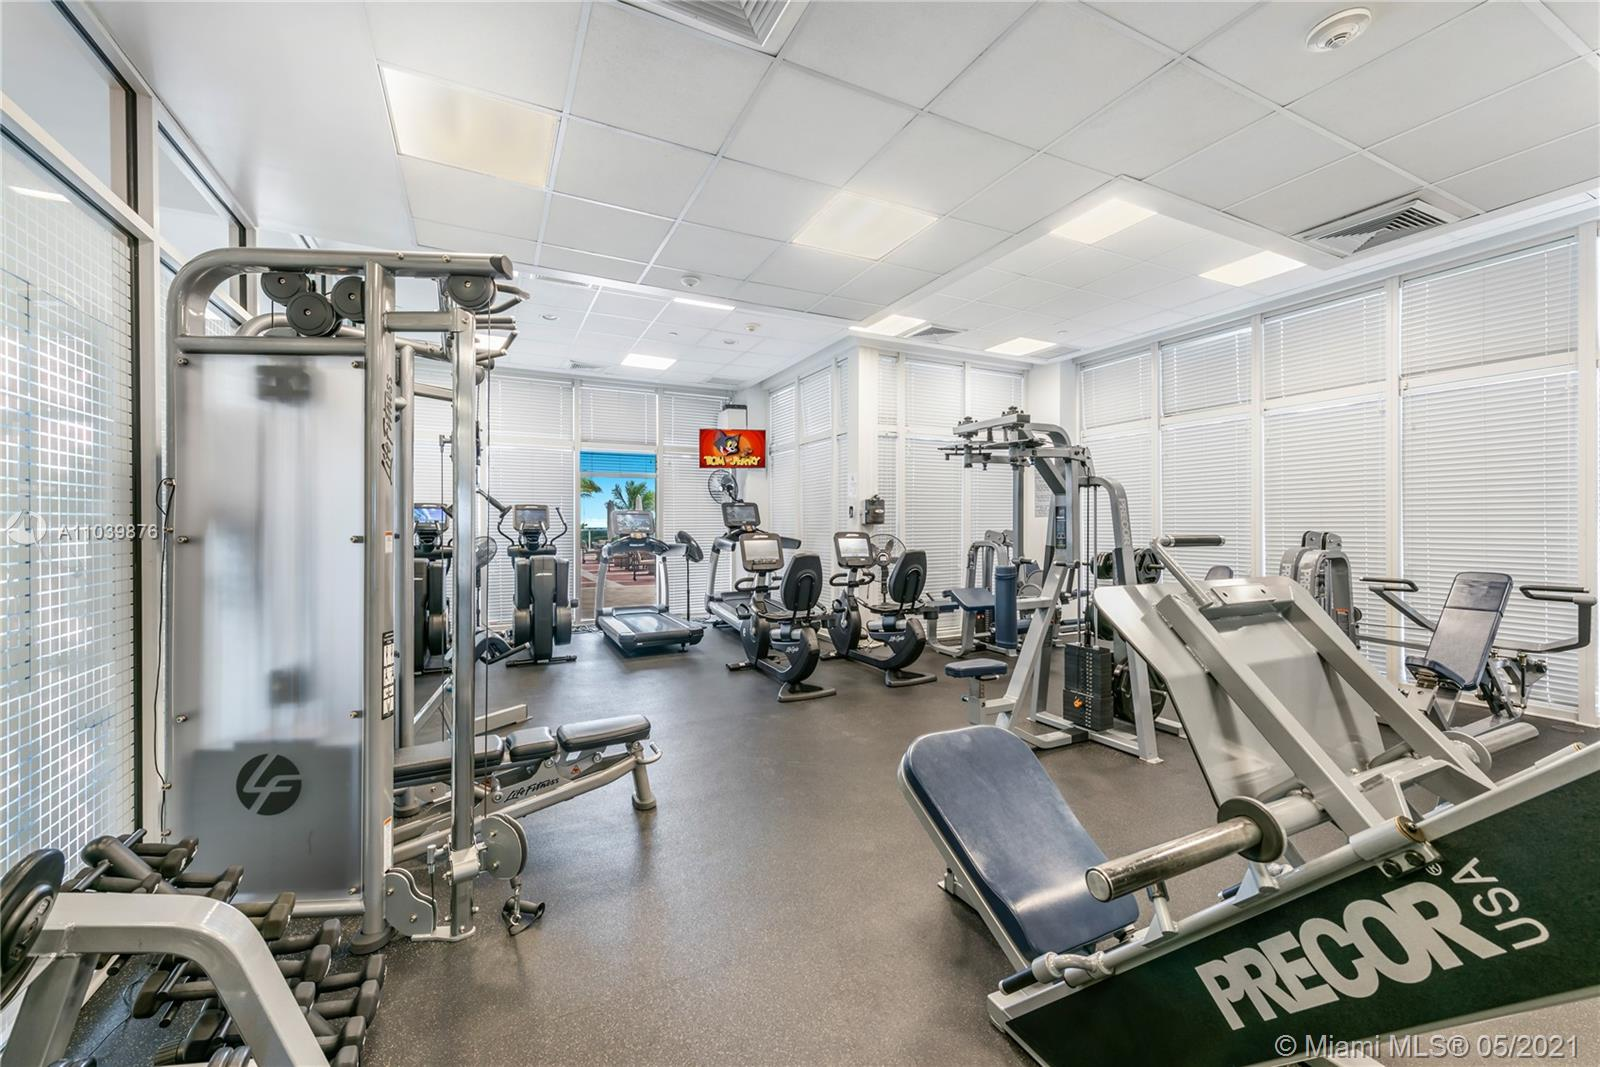 Photo of 10225 Collins Ave #1703, Bal Harbour, Florida, 33154 - Fully-equipped fitness studio.